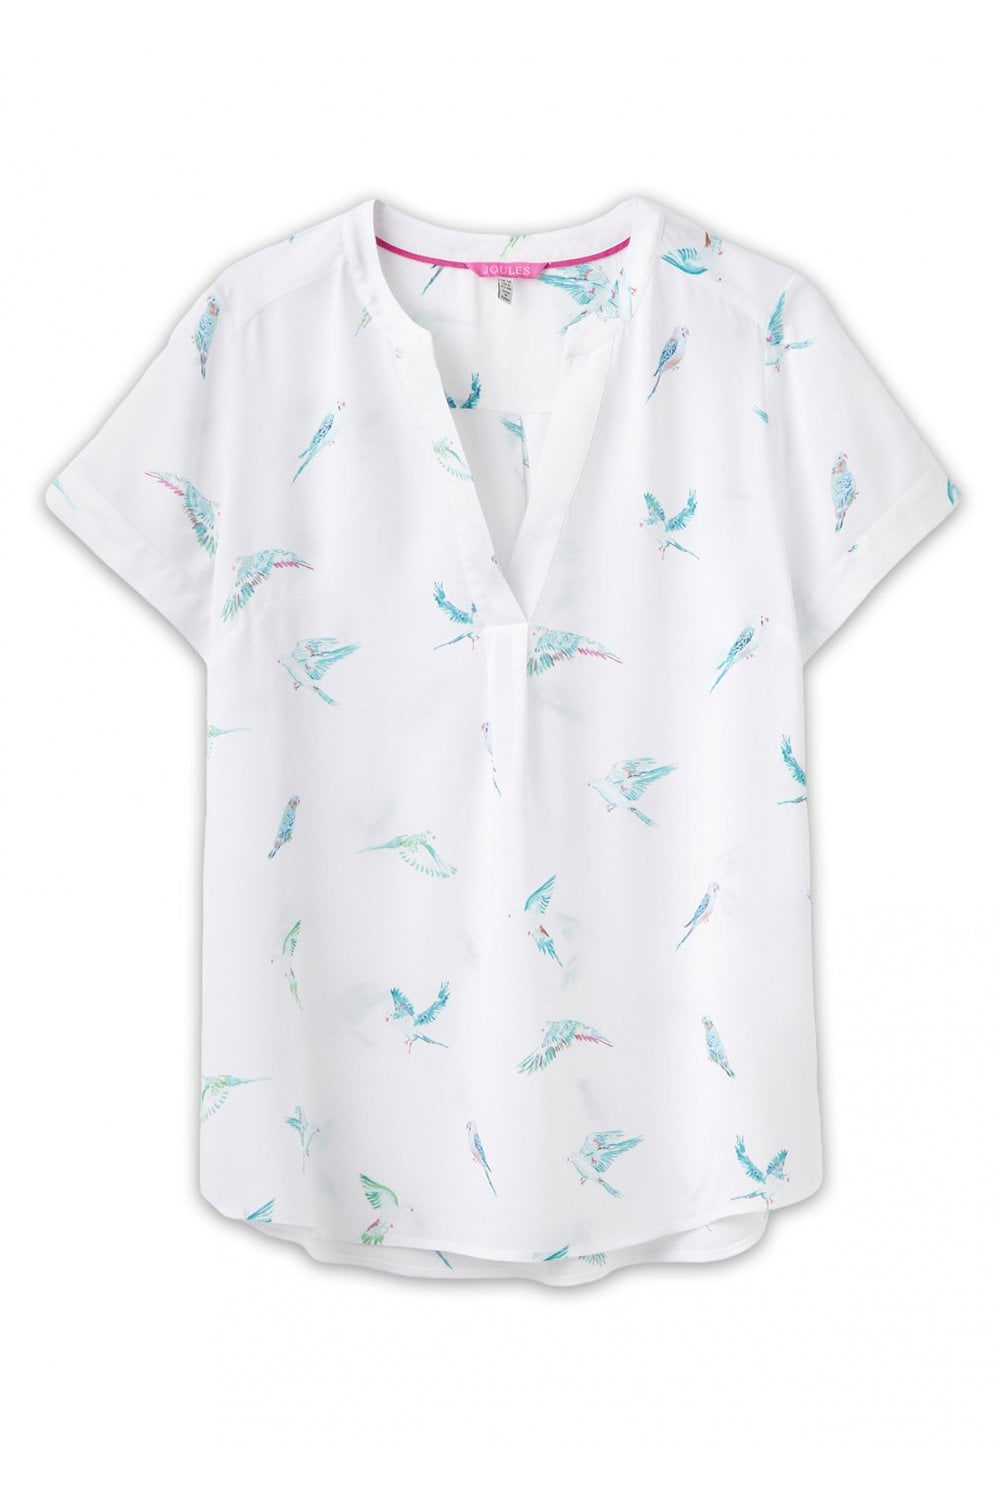 178bec30dd10aa Joules Womens Iona Short Sleeve Blouse - White Parakeets - T-shirts ...